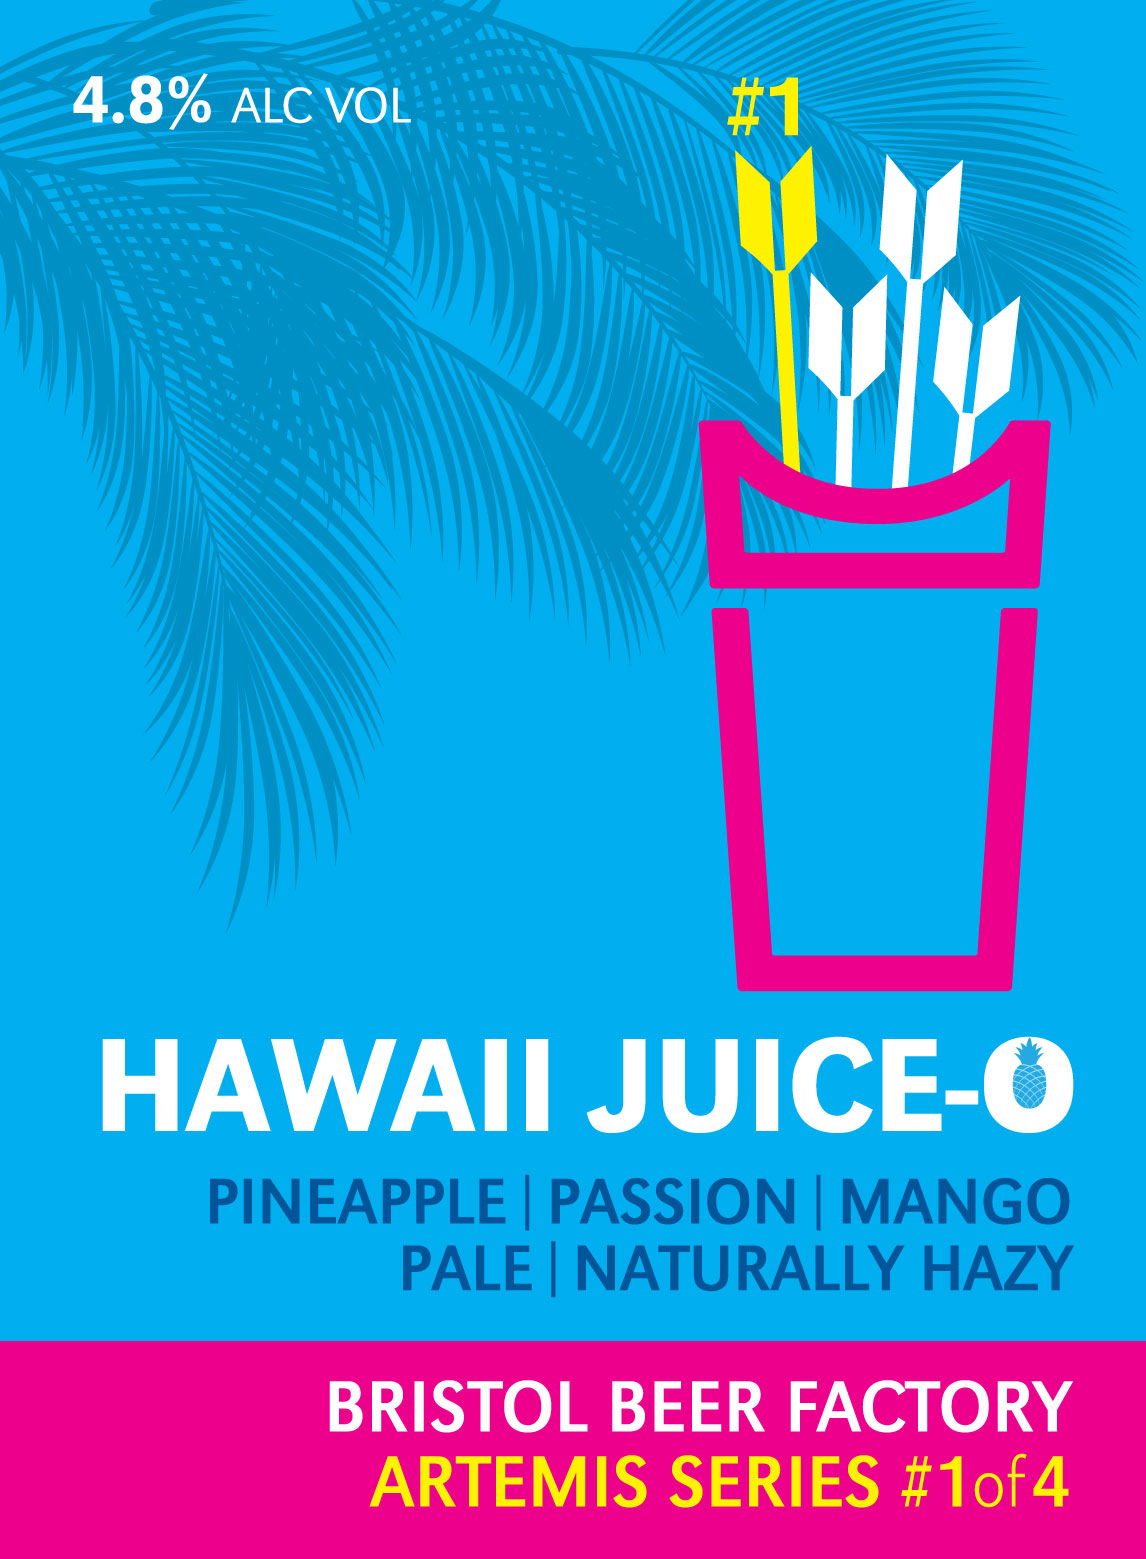 BBF HAWAII JUICE-O